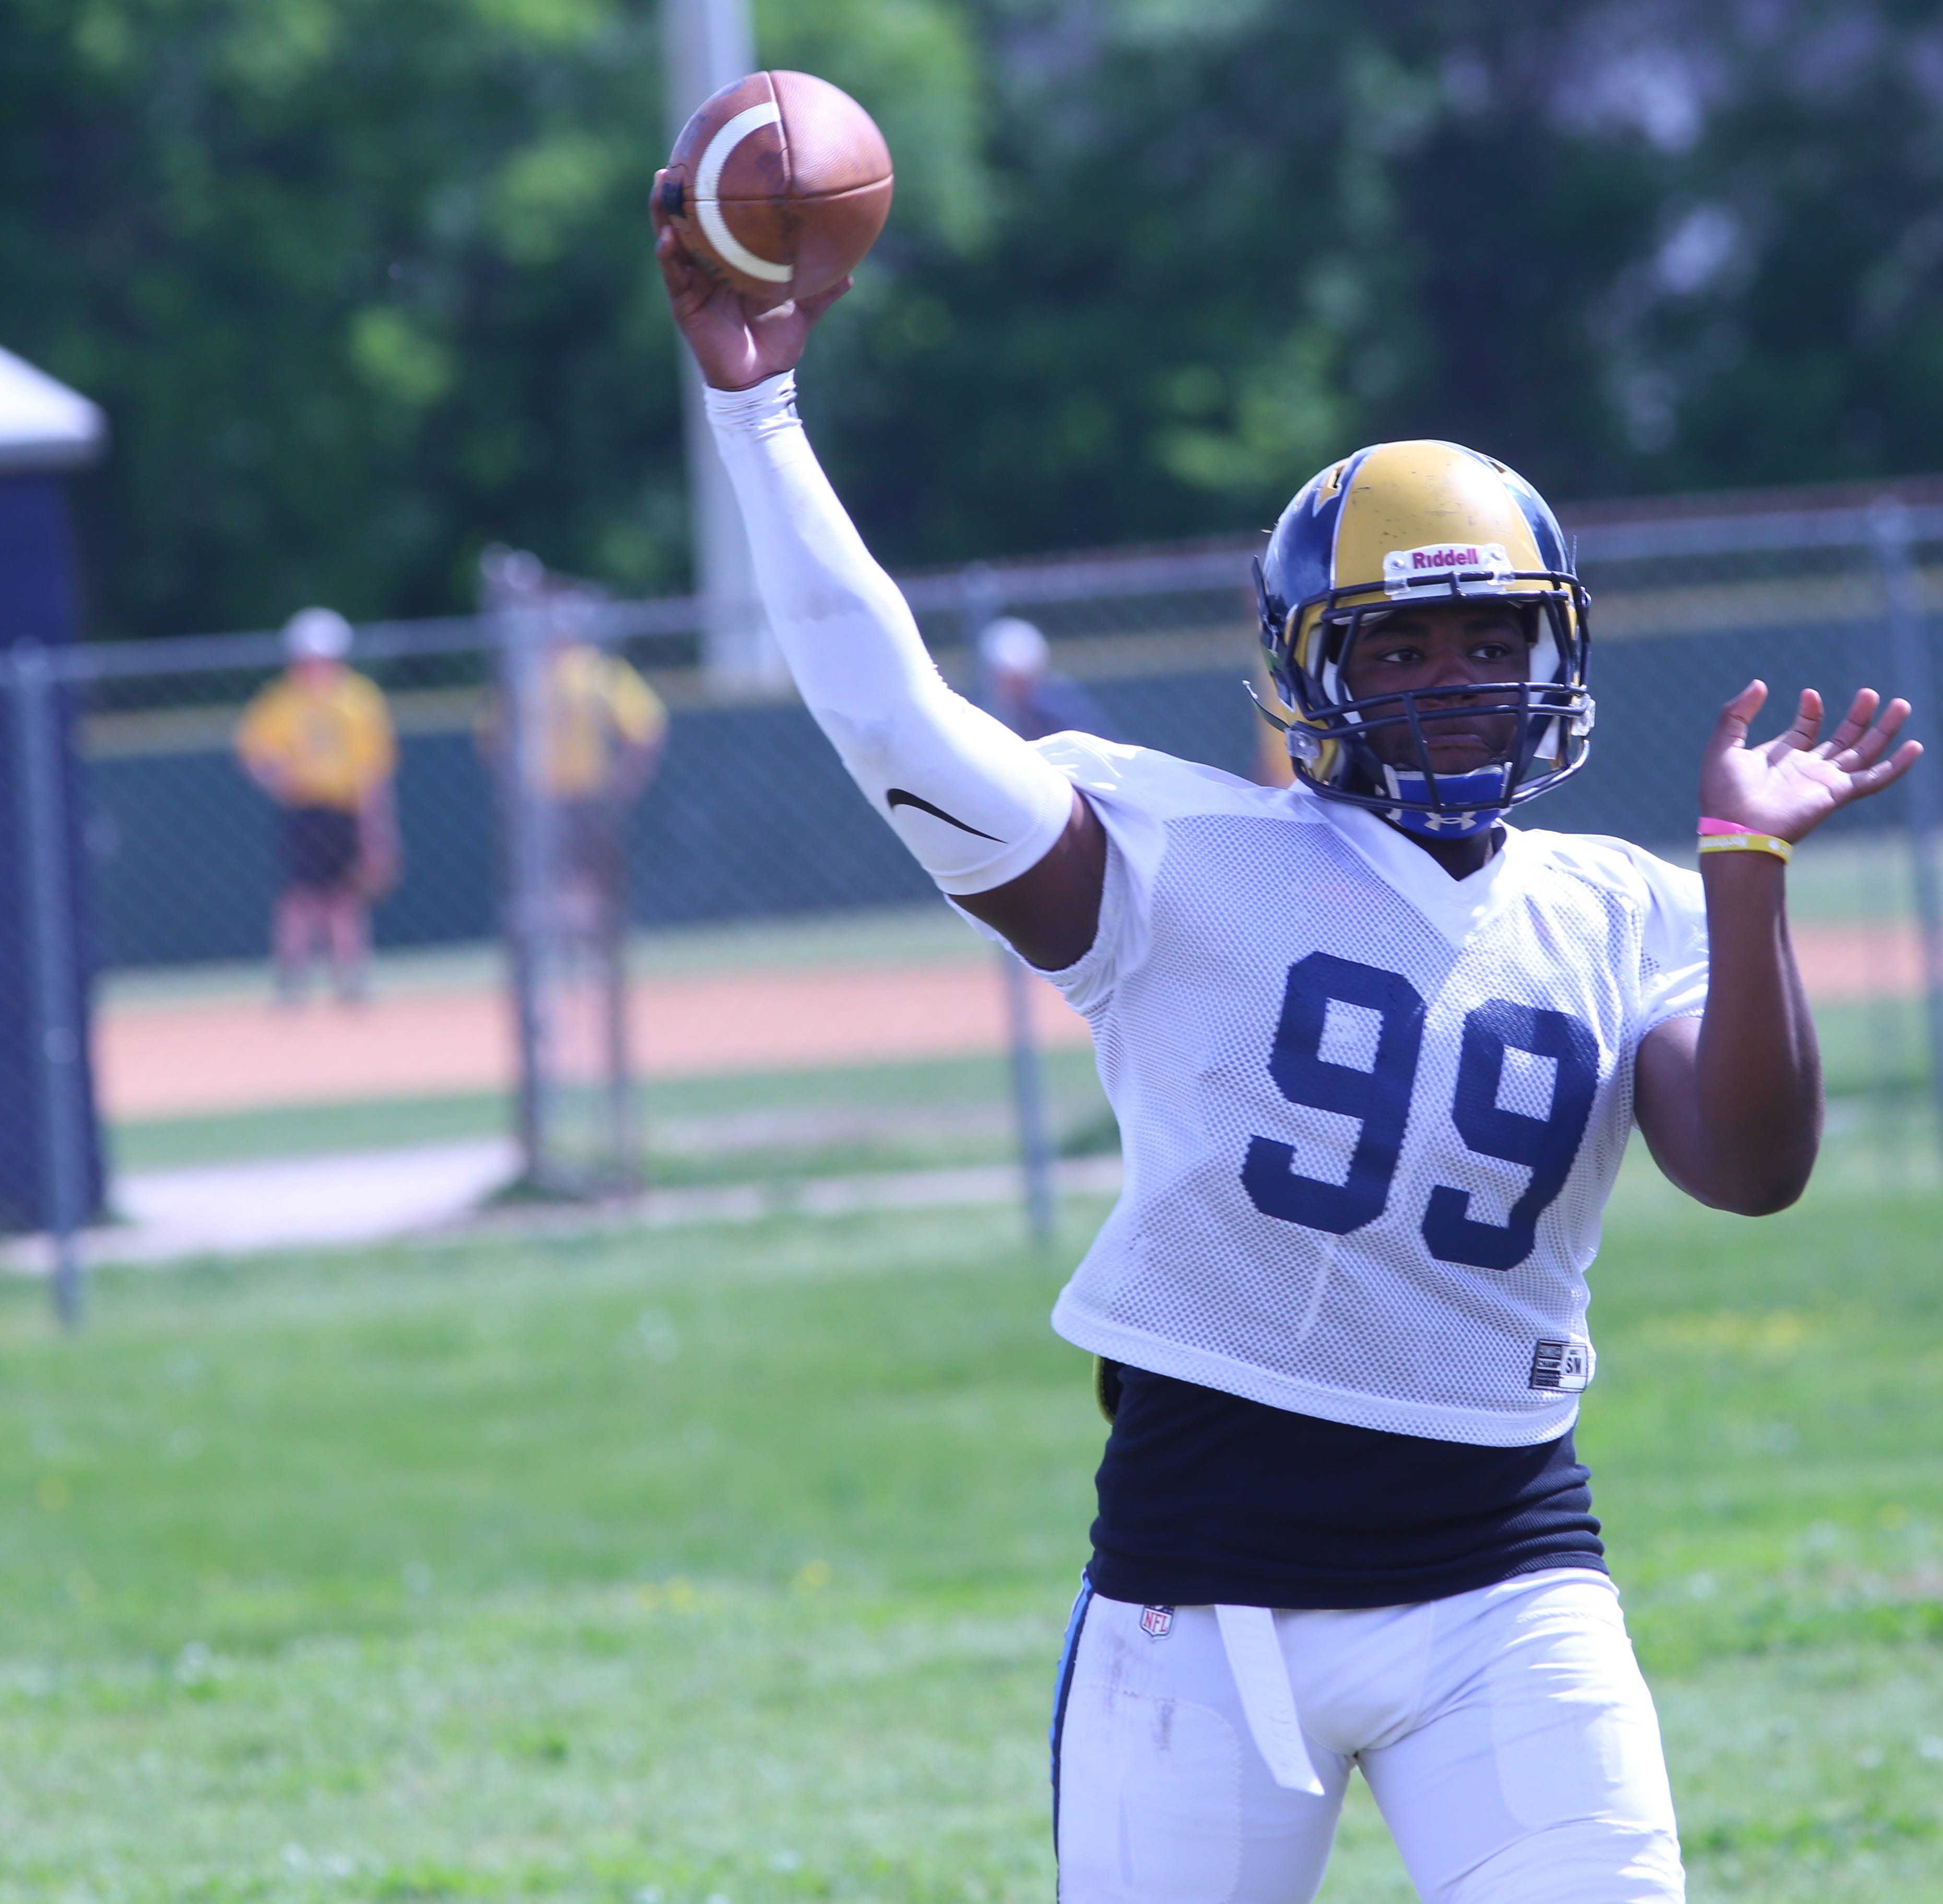 Six football programs to feature new QBs when 2019 season begins